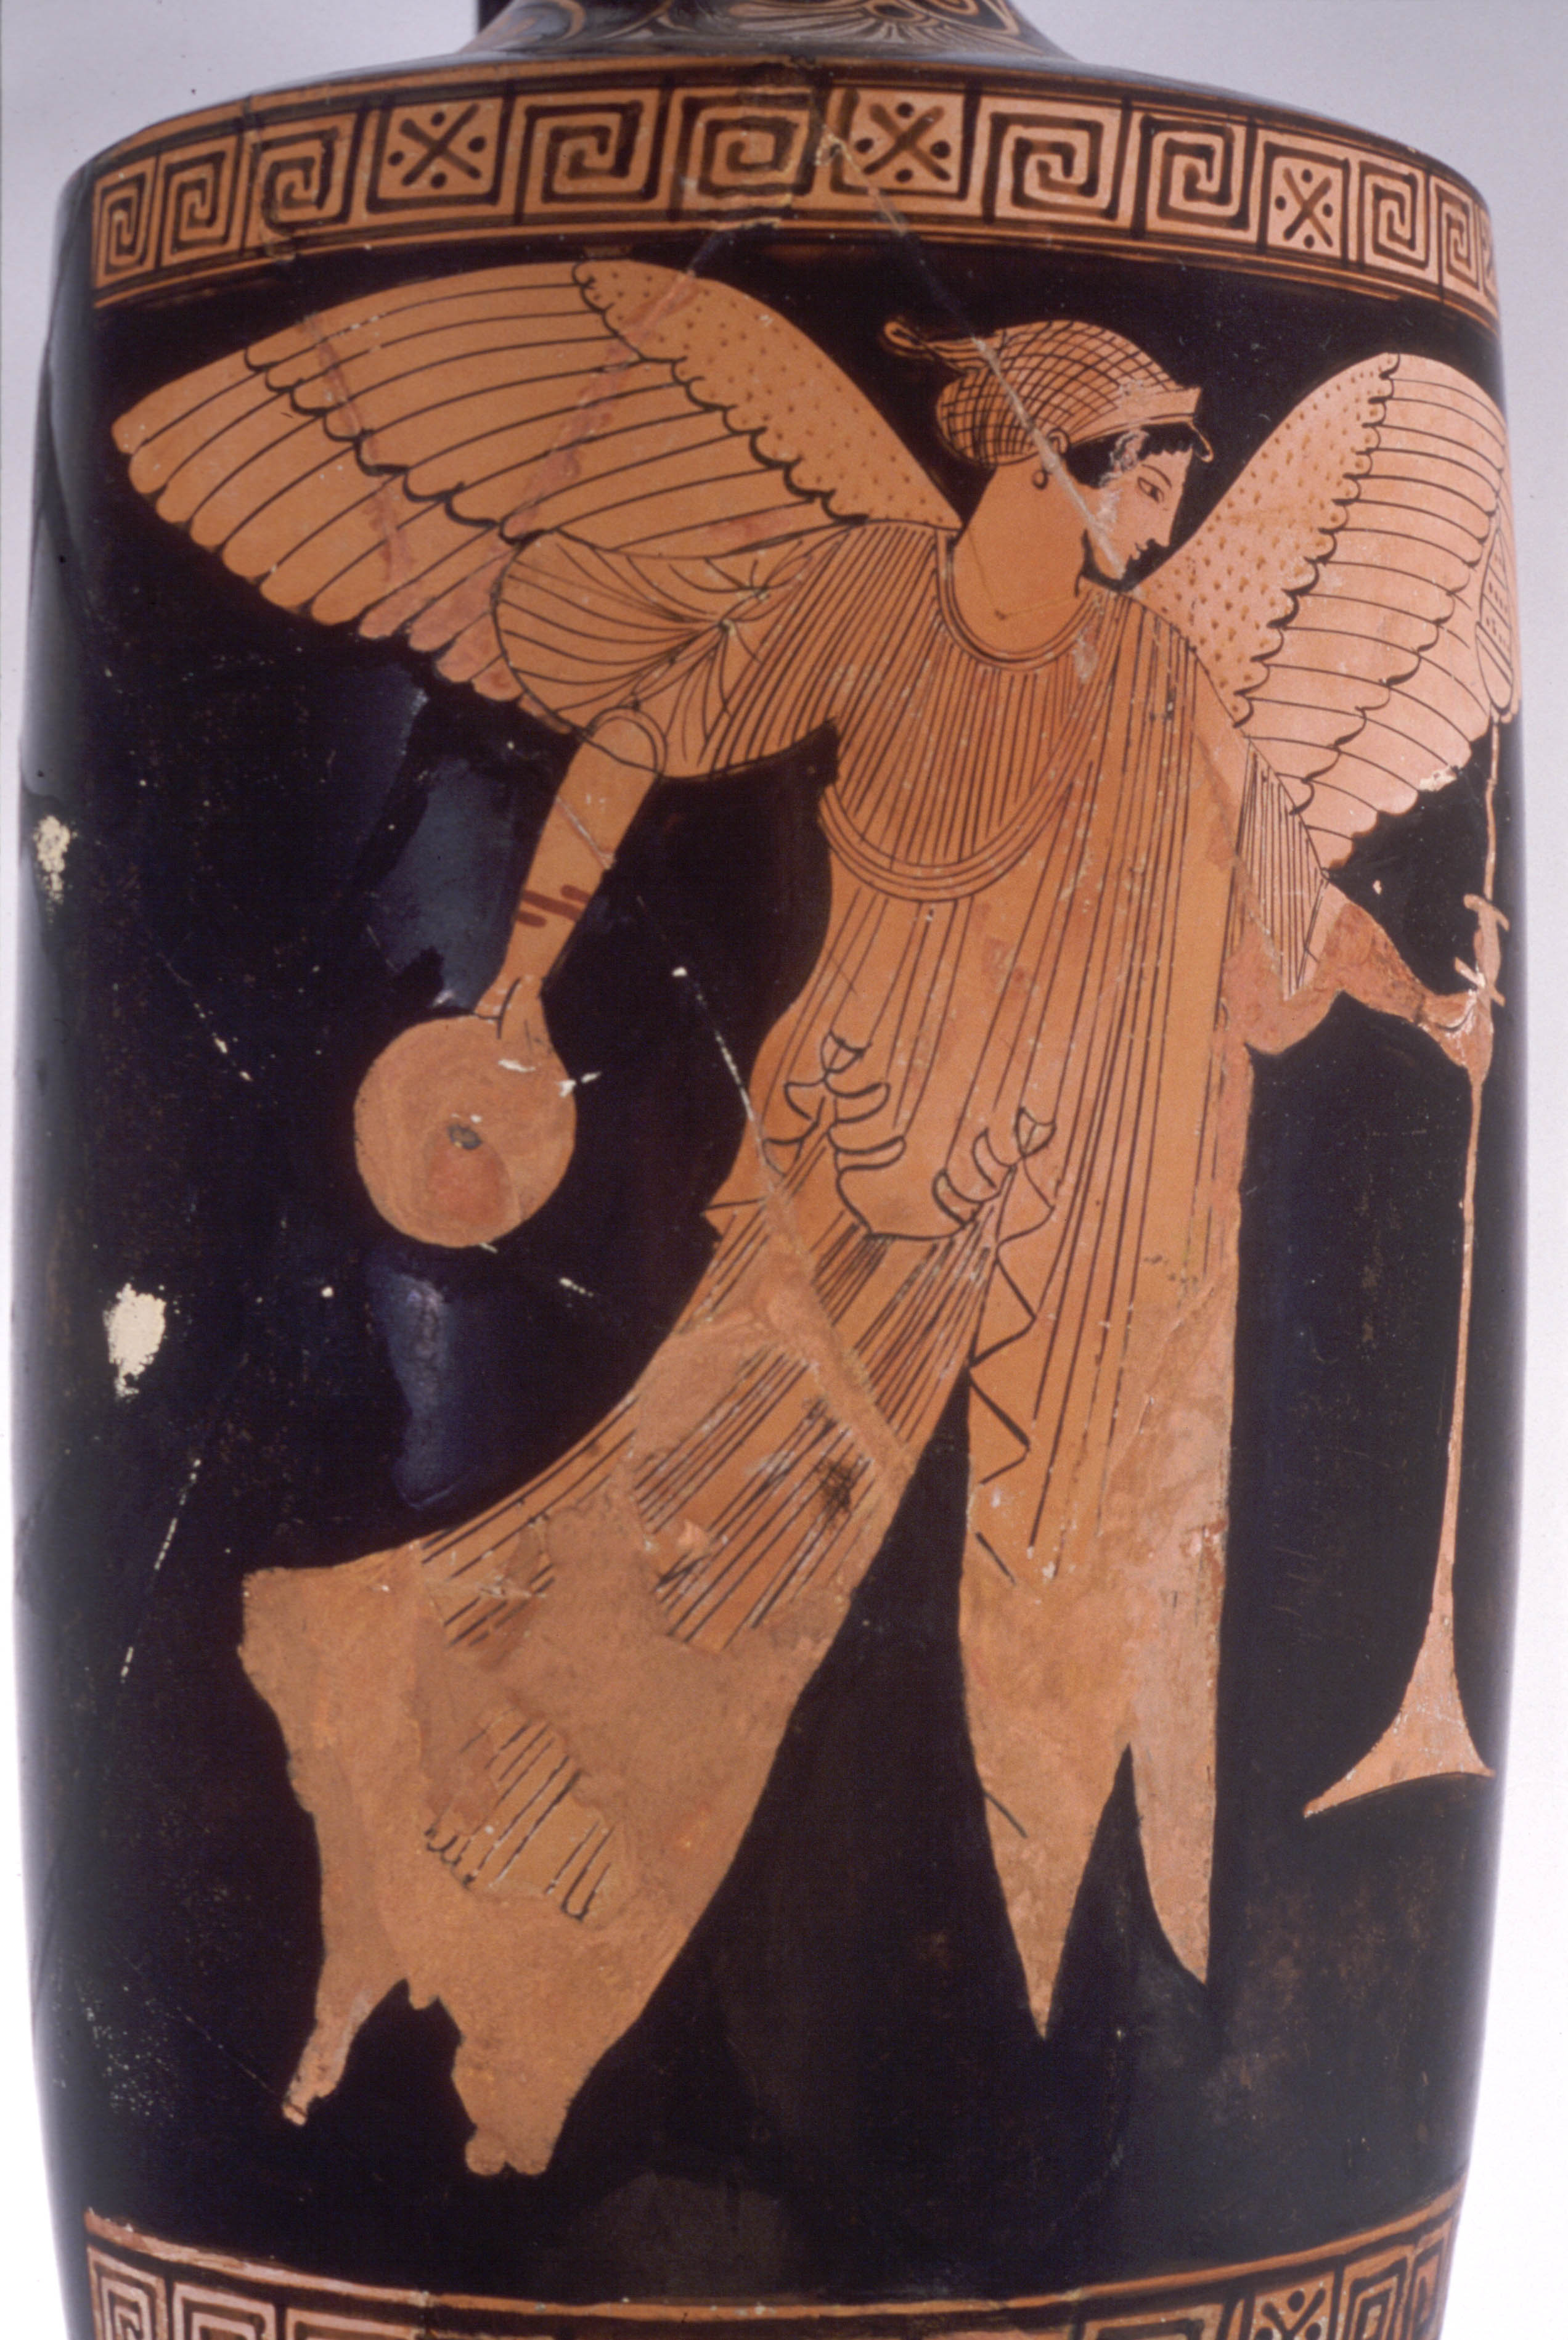 Nike goddess of victory in ancient greece the role of women in images of nike biocorpaavc